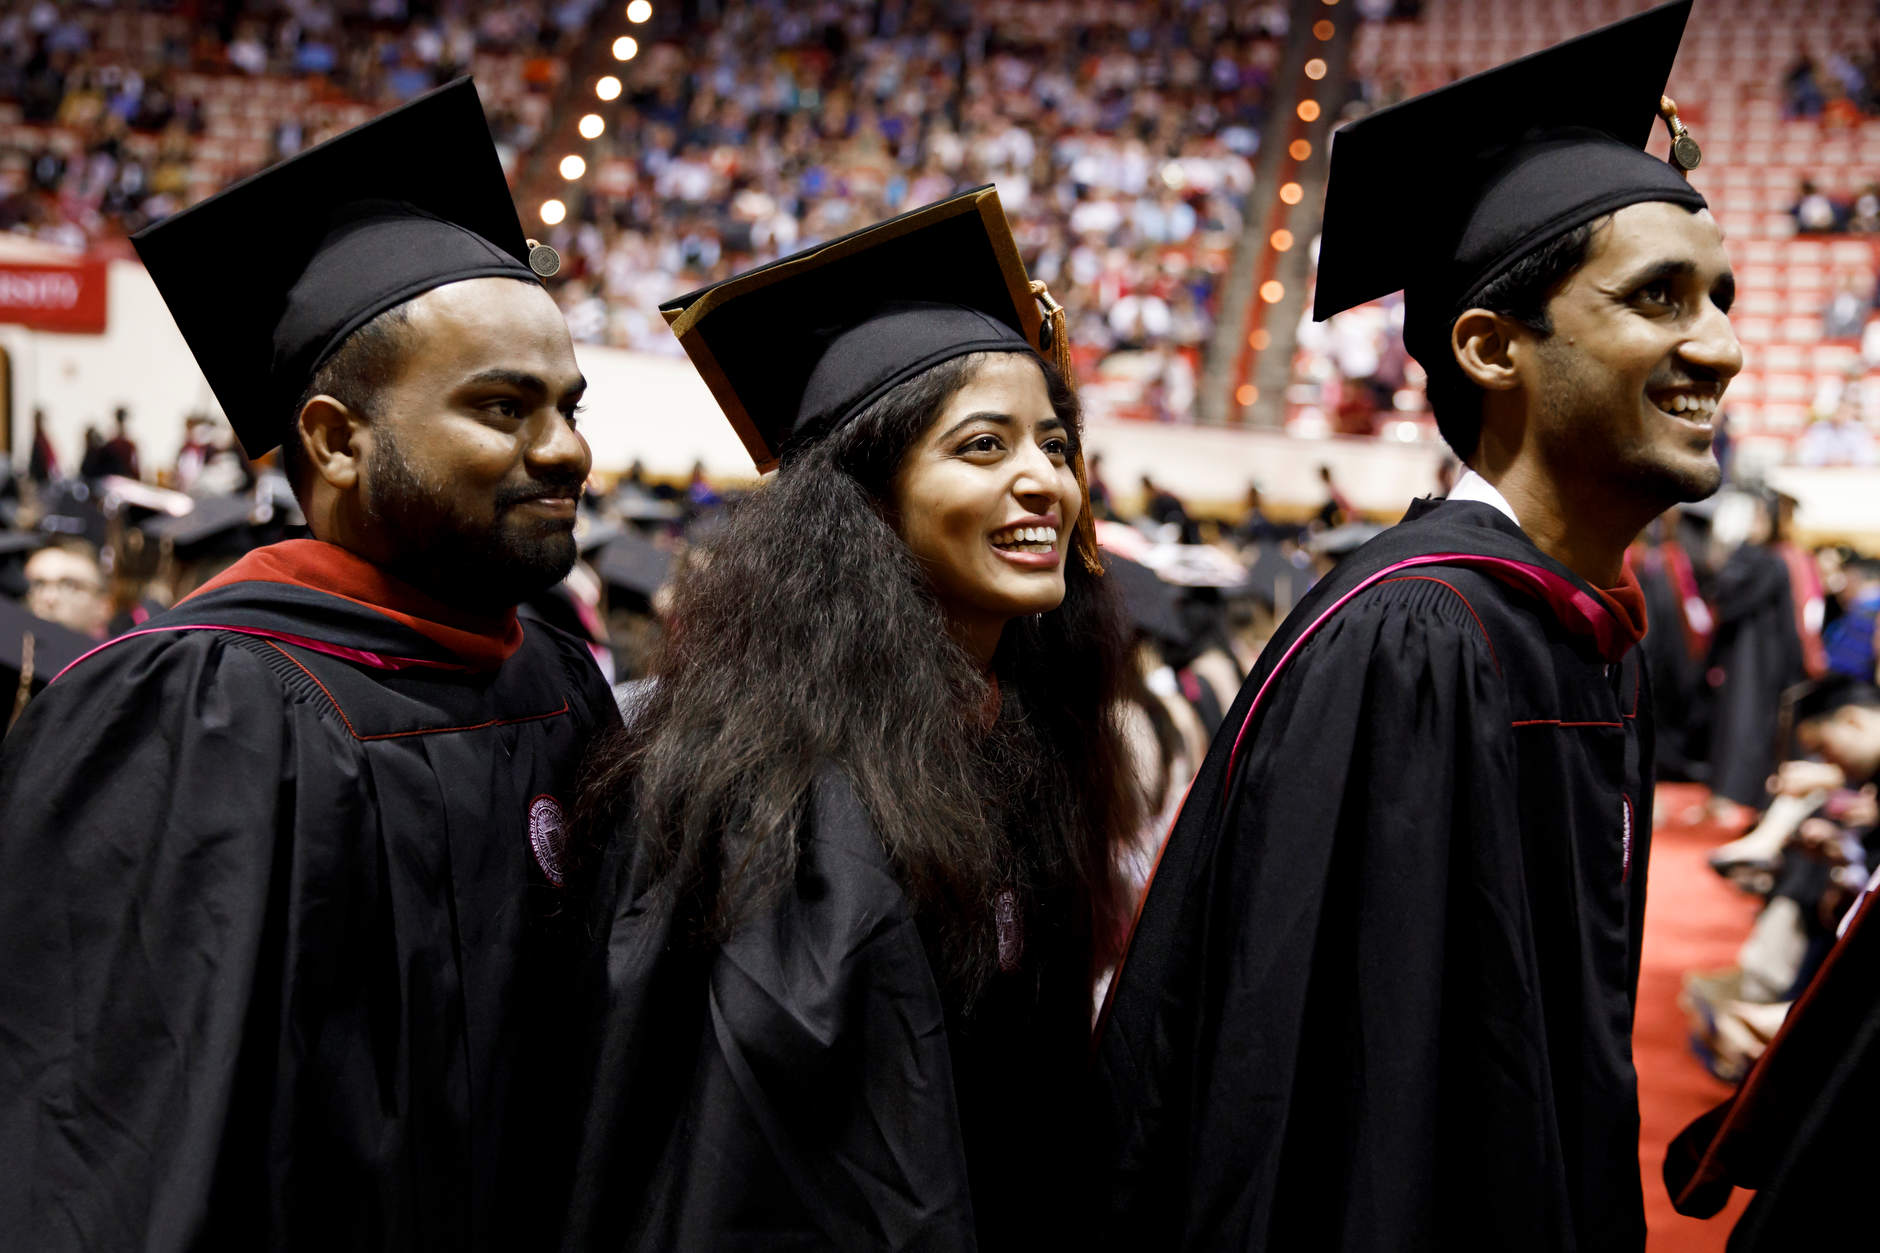 Graduates smile as friends in the audience cheer during the Indiana University Bloomington Graduate Commencement at Assembly Hall on Friday, May 3, 2019. (James Brosher/Indiana University)